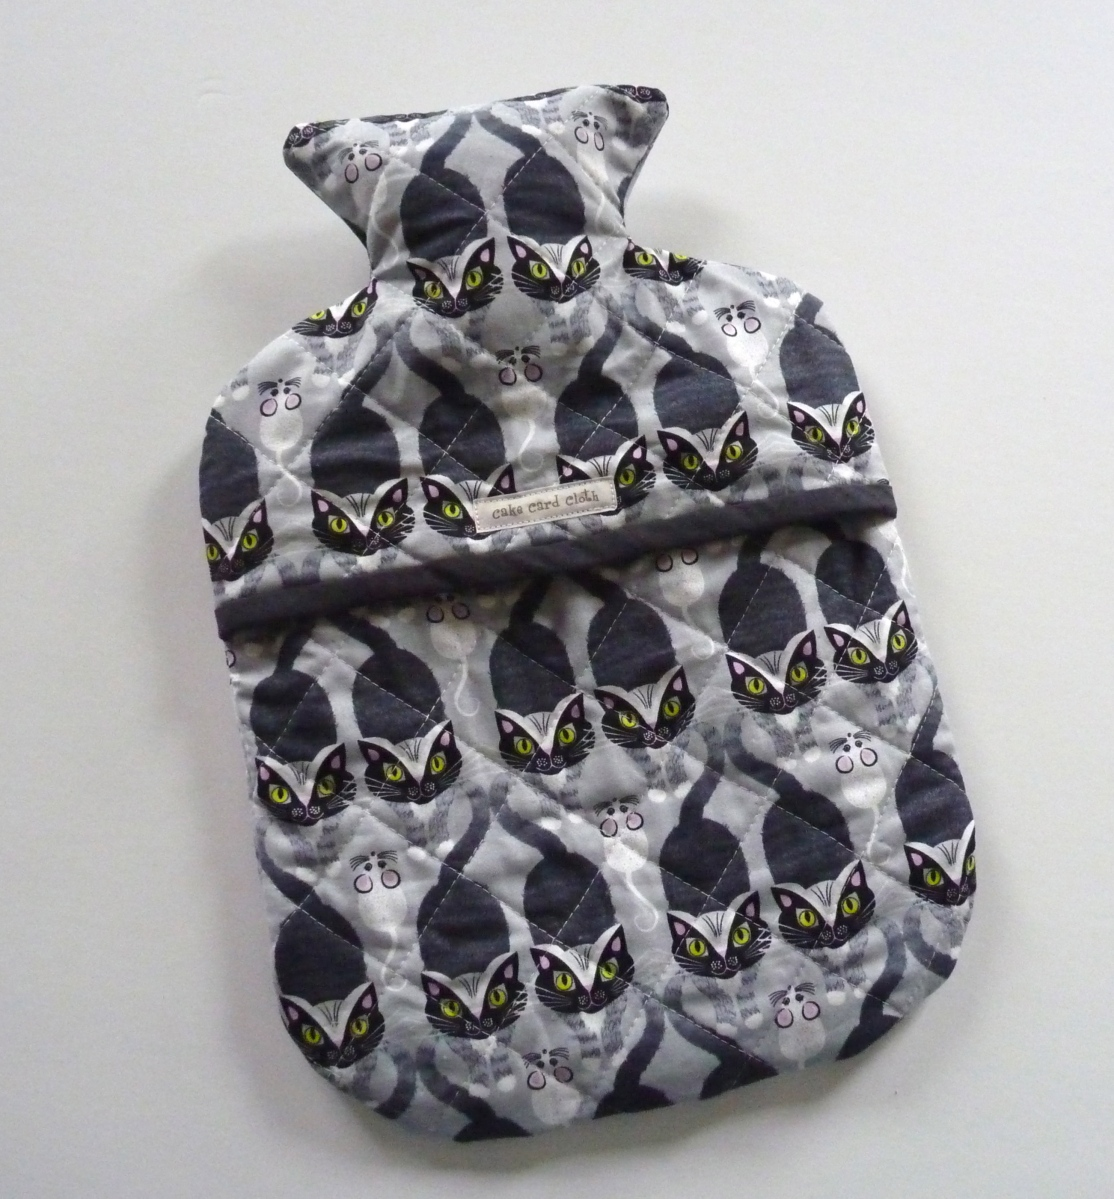 Hot water bottle cover in cat and mouse fabric